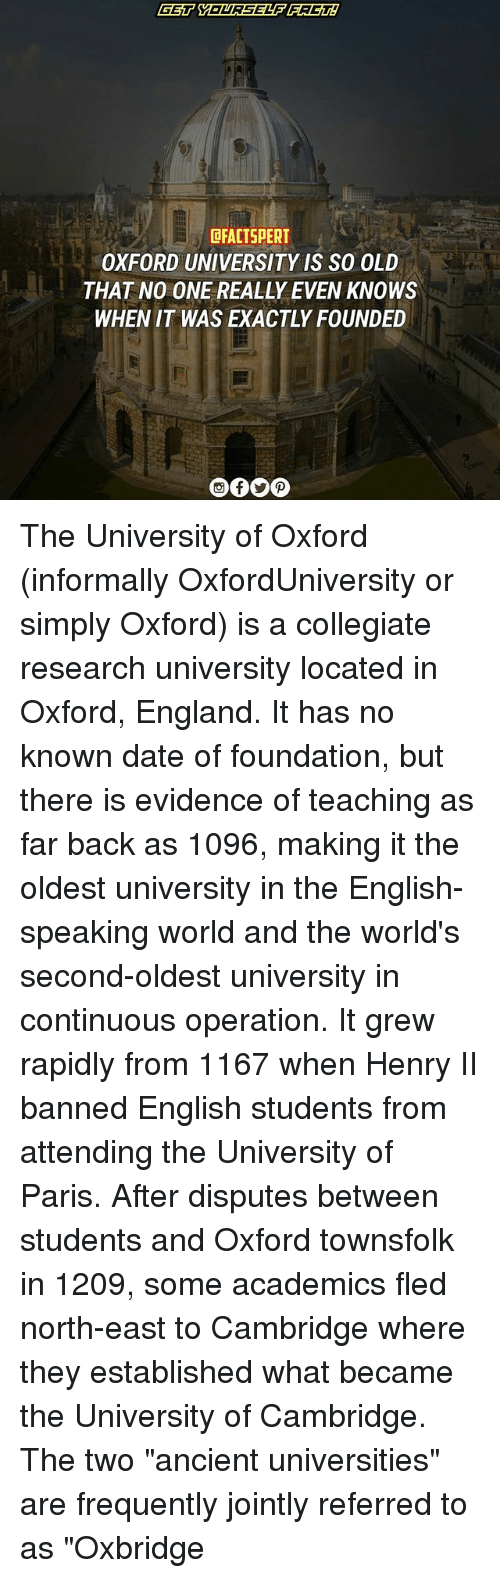 "England, Memes, and Date: dFACTSPERT  OXFORD UNIVERSITY IS SO OLD  THAT NO ONE REALLY EVEN KNOWS  WHEN IT WAS EXACTLY FOUNDED The University of Oxford (informally OxfordUniversity or simply Oxford) is a collegiate research university located in Oxford, England. It has no known date of foundation, but there is evidence of teaching as far back as 1096, making it the oldest university in the English-speaking world and the world's second-oldest university in continuous operation. It grew rapidly from 1167 when Henry II banned English students from attending the University of Paris. After disputes between students and Oxford townsfolk in 1209, some academics fled north-east to Cambridge where they established what became the University of Cambridge. The two ""ancient universities"" are frequently jointly referred to as ""Oxbridge"